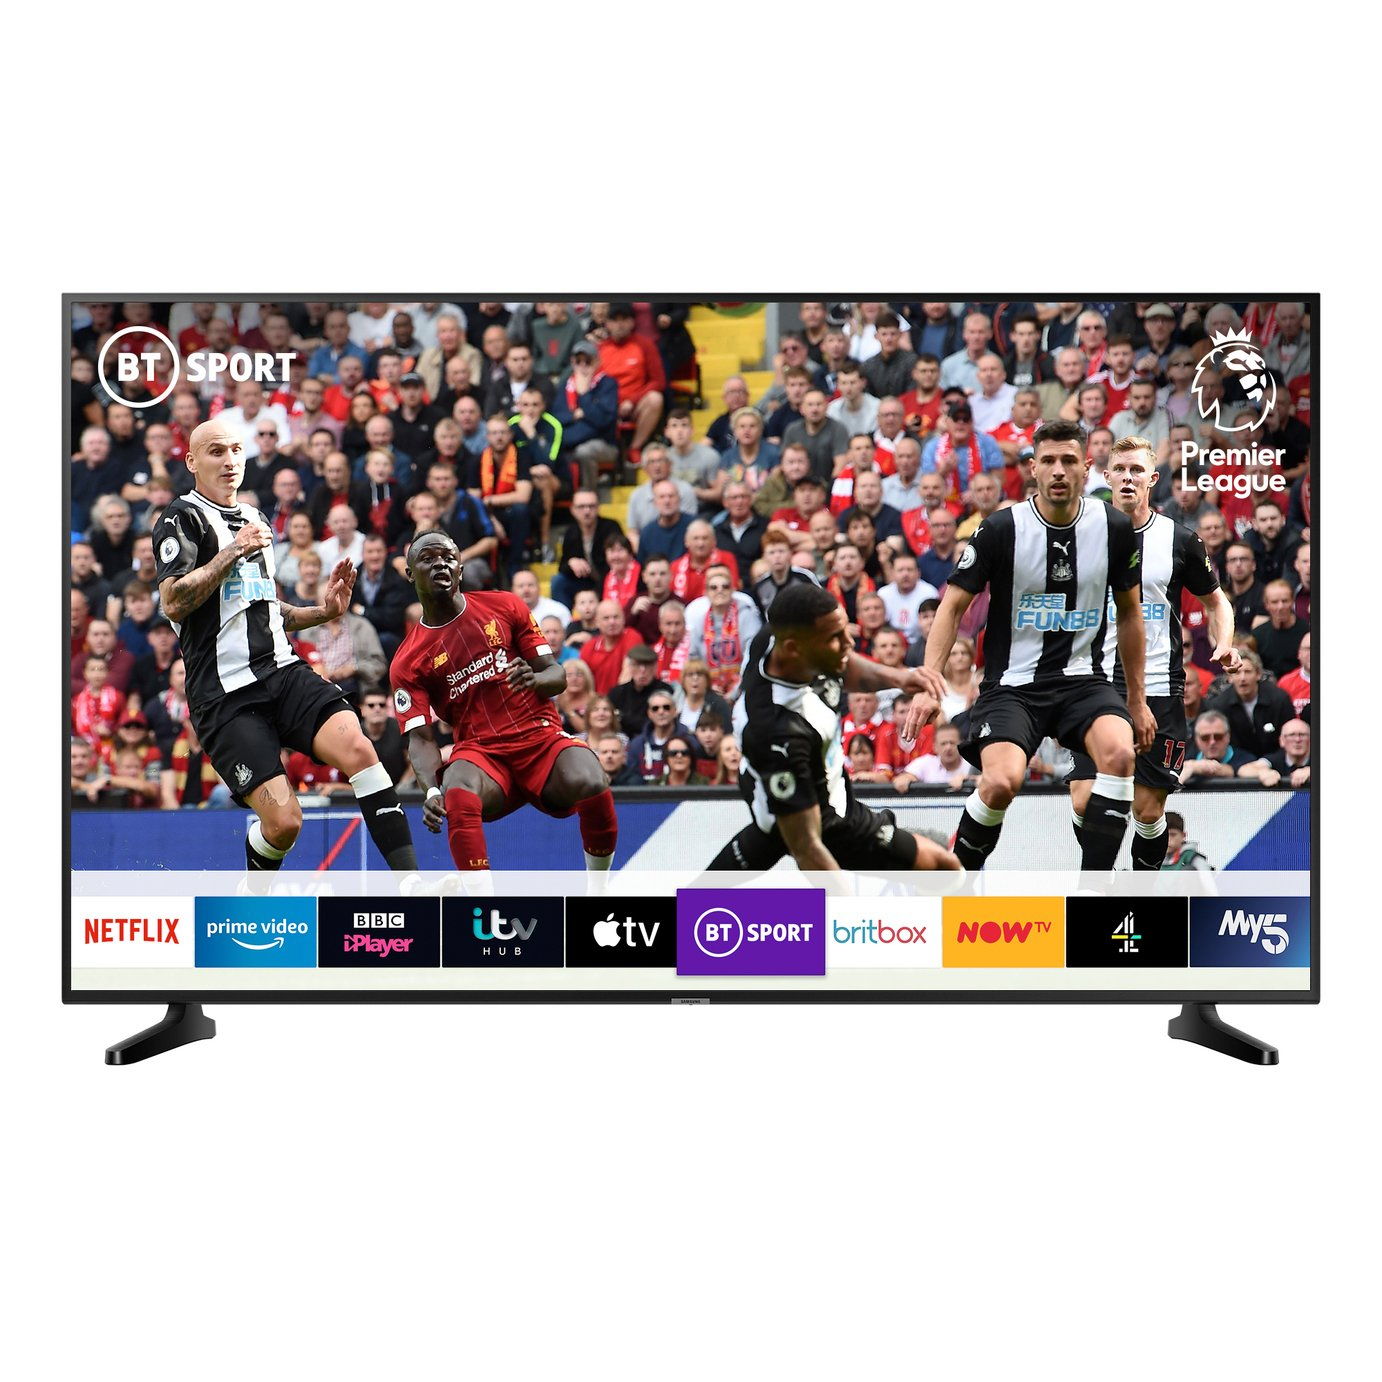 Samsung 43 Inch UE43RU7020 Smart 4K HDR LED TV